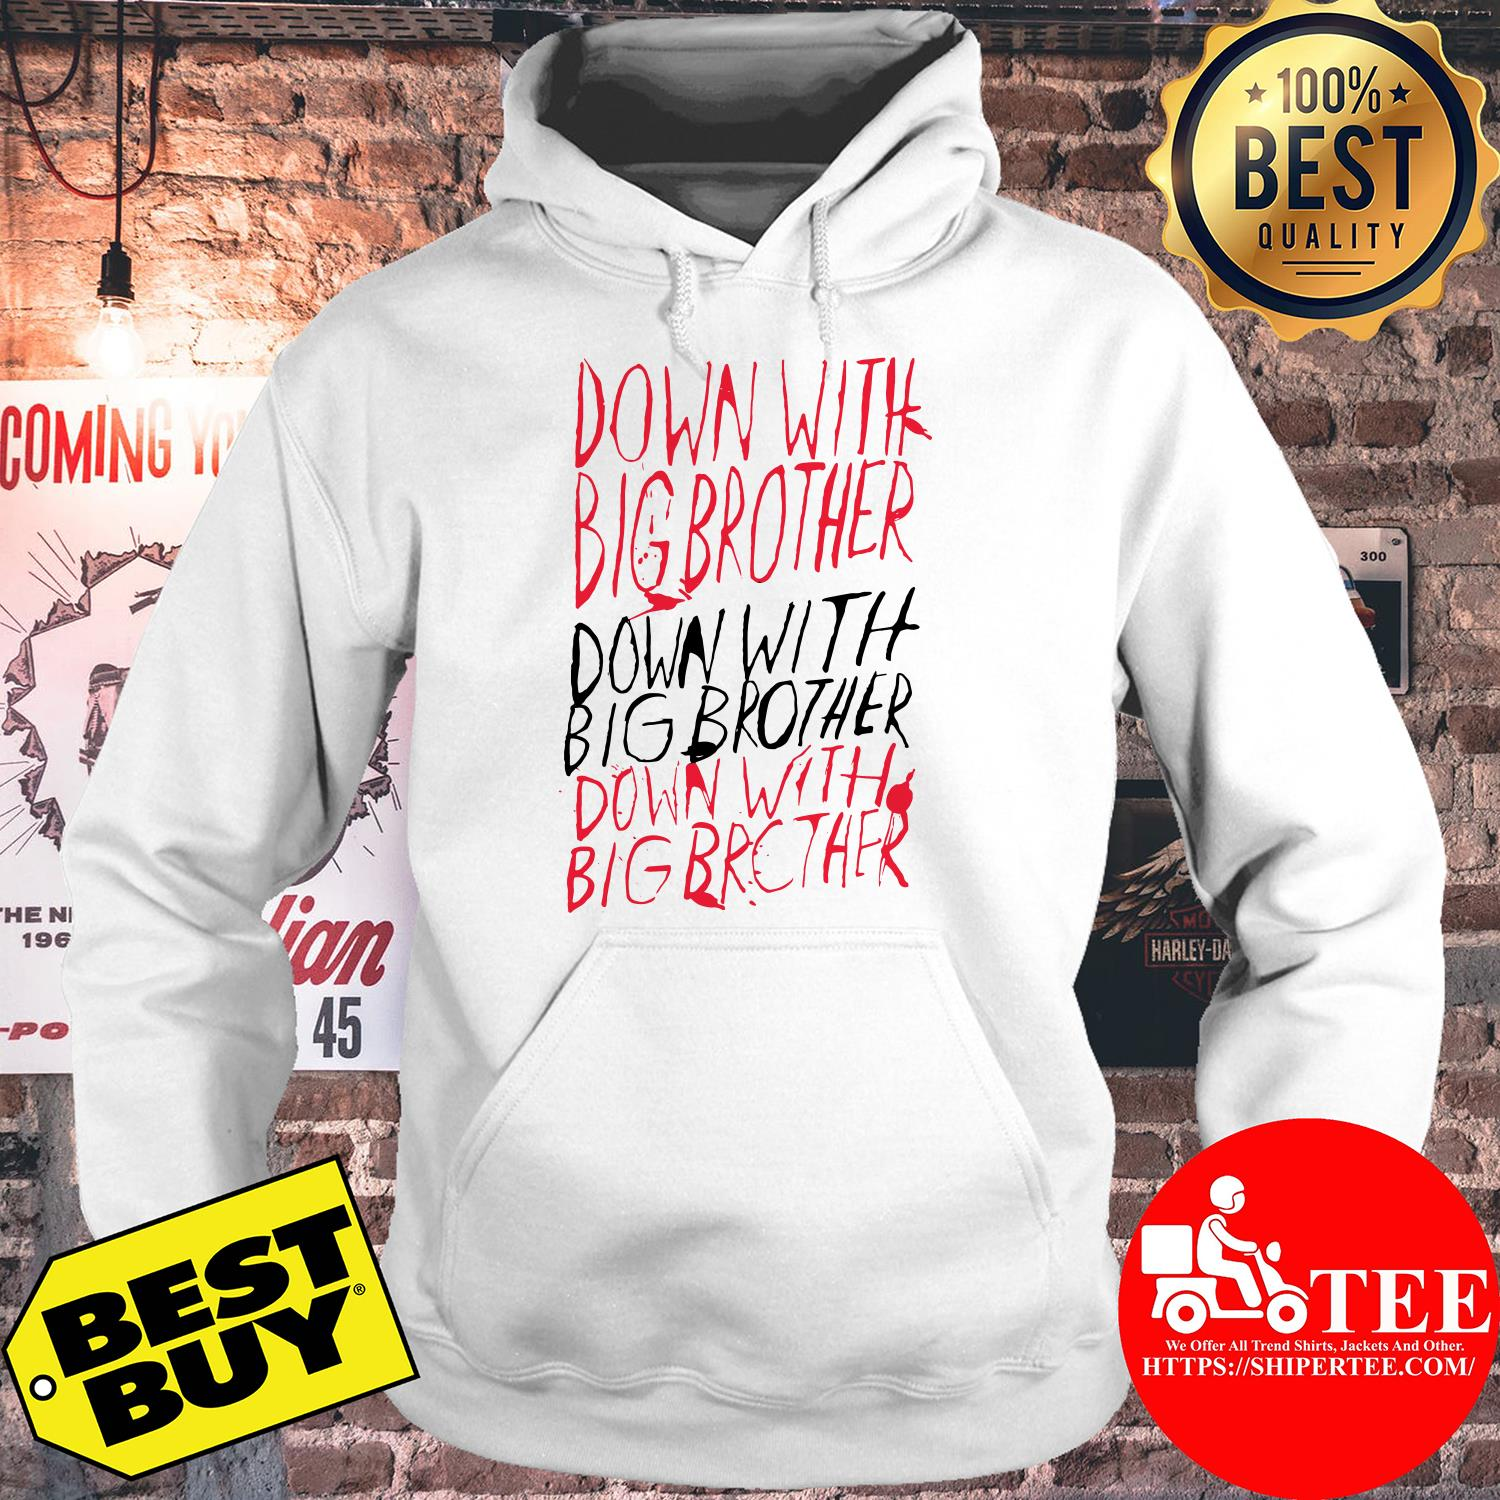 1984-Down with Big Brother hoodie